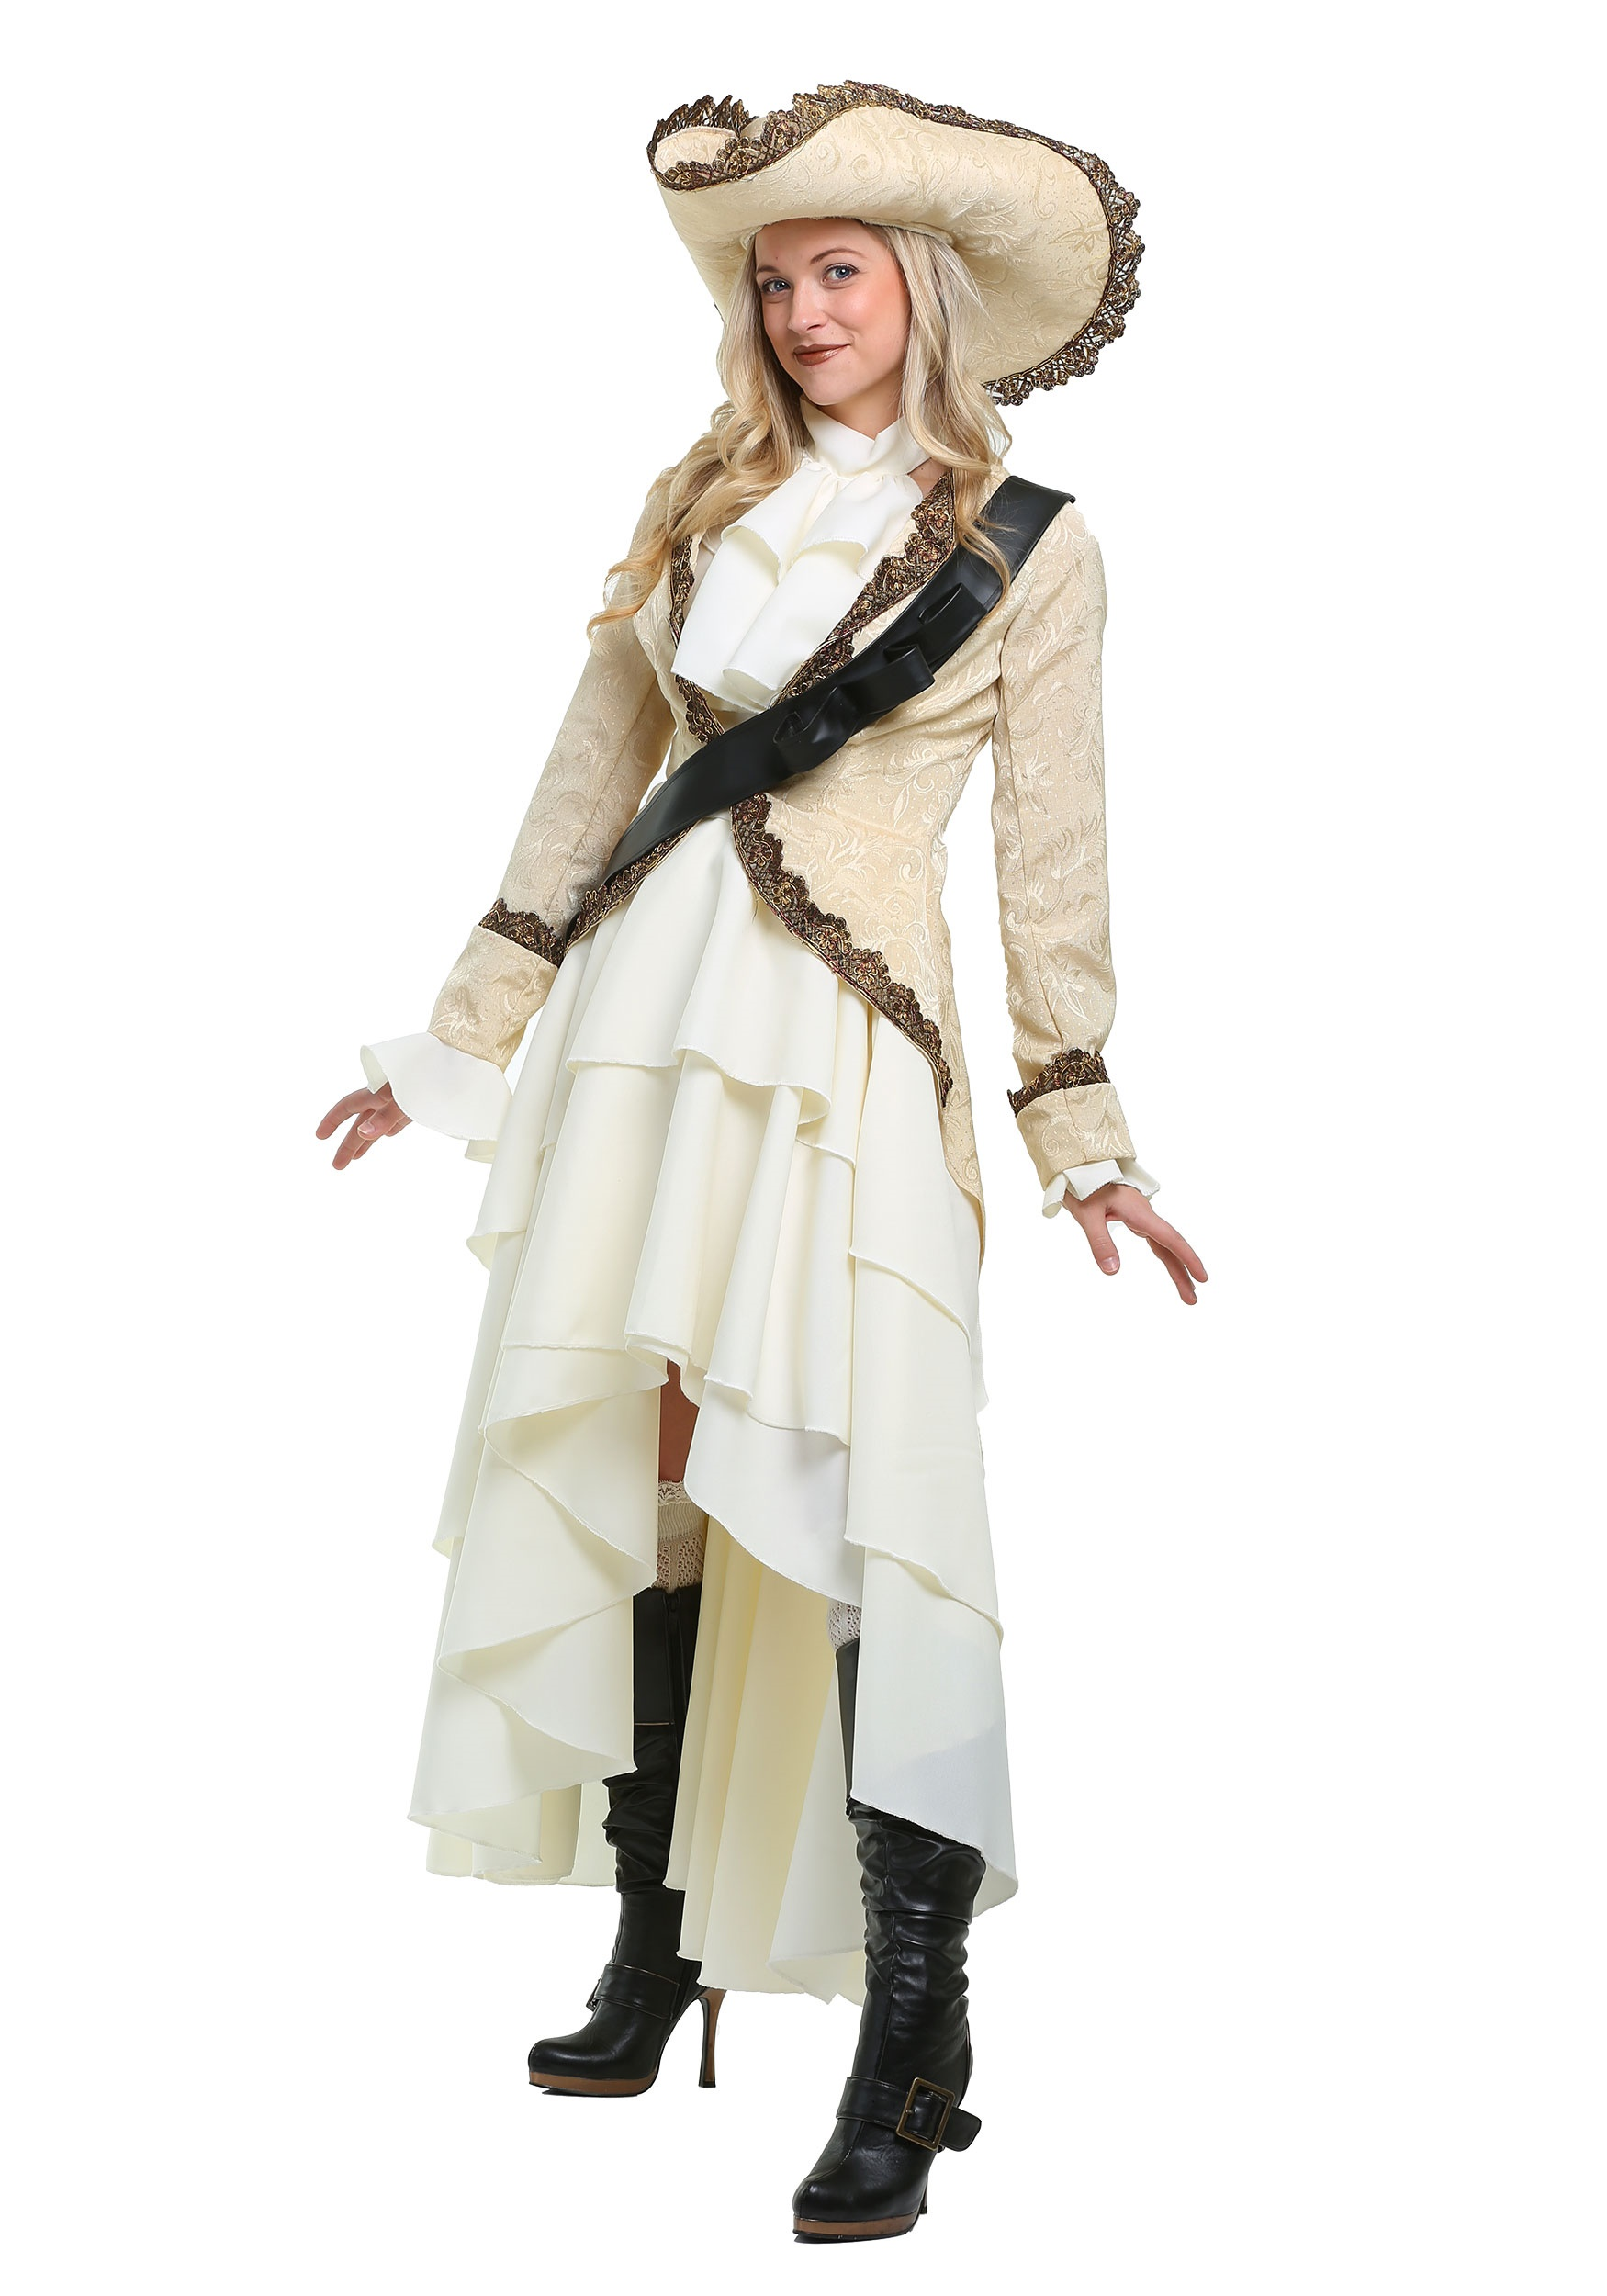 Captivating Pirate Plus Size Costume for Women 1X 2X